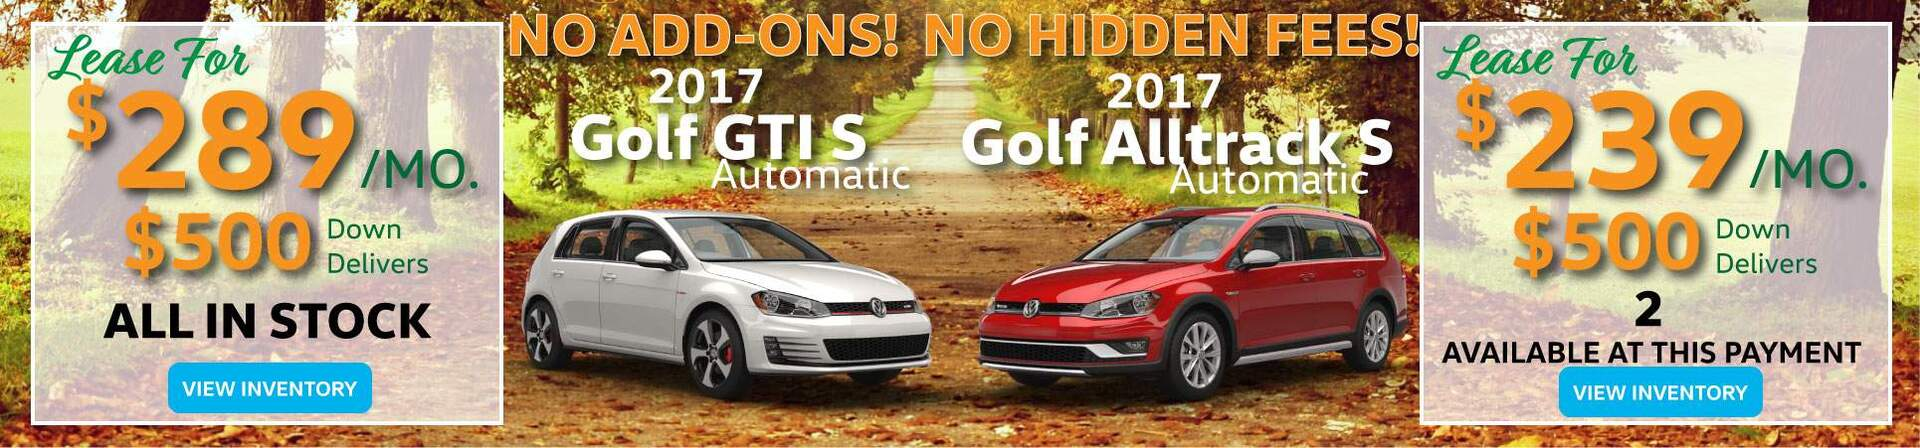 Golf GTI and Alltrack